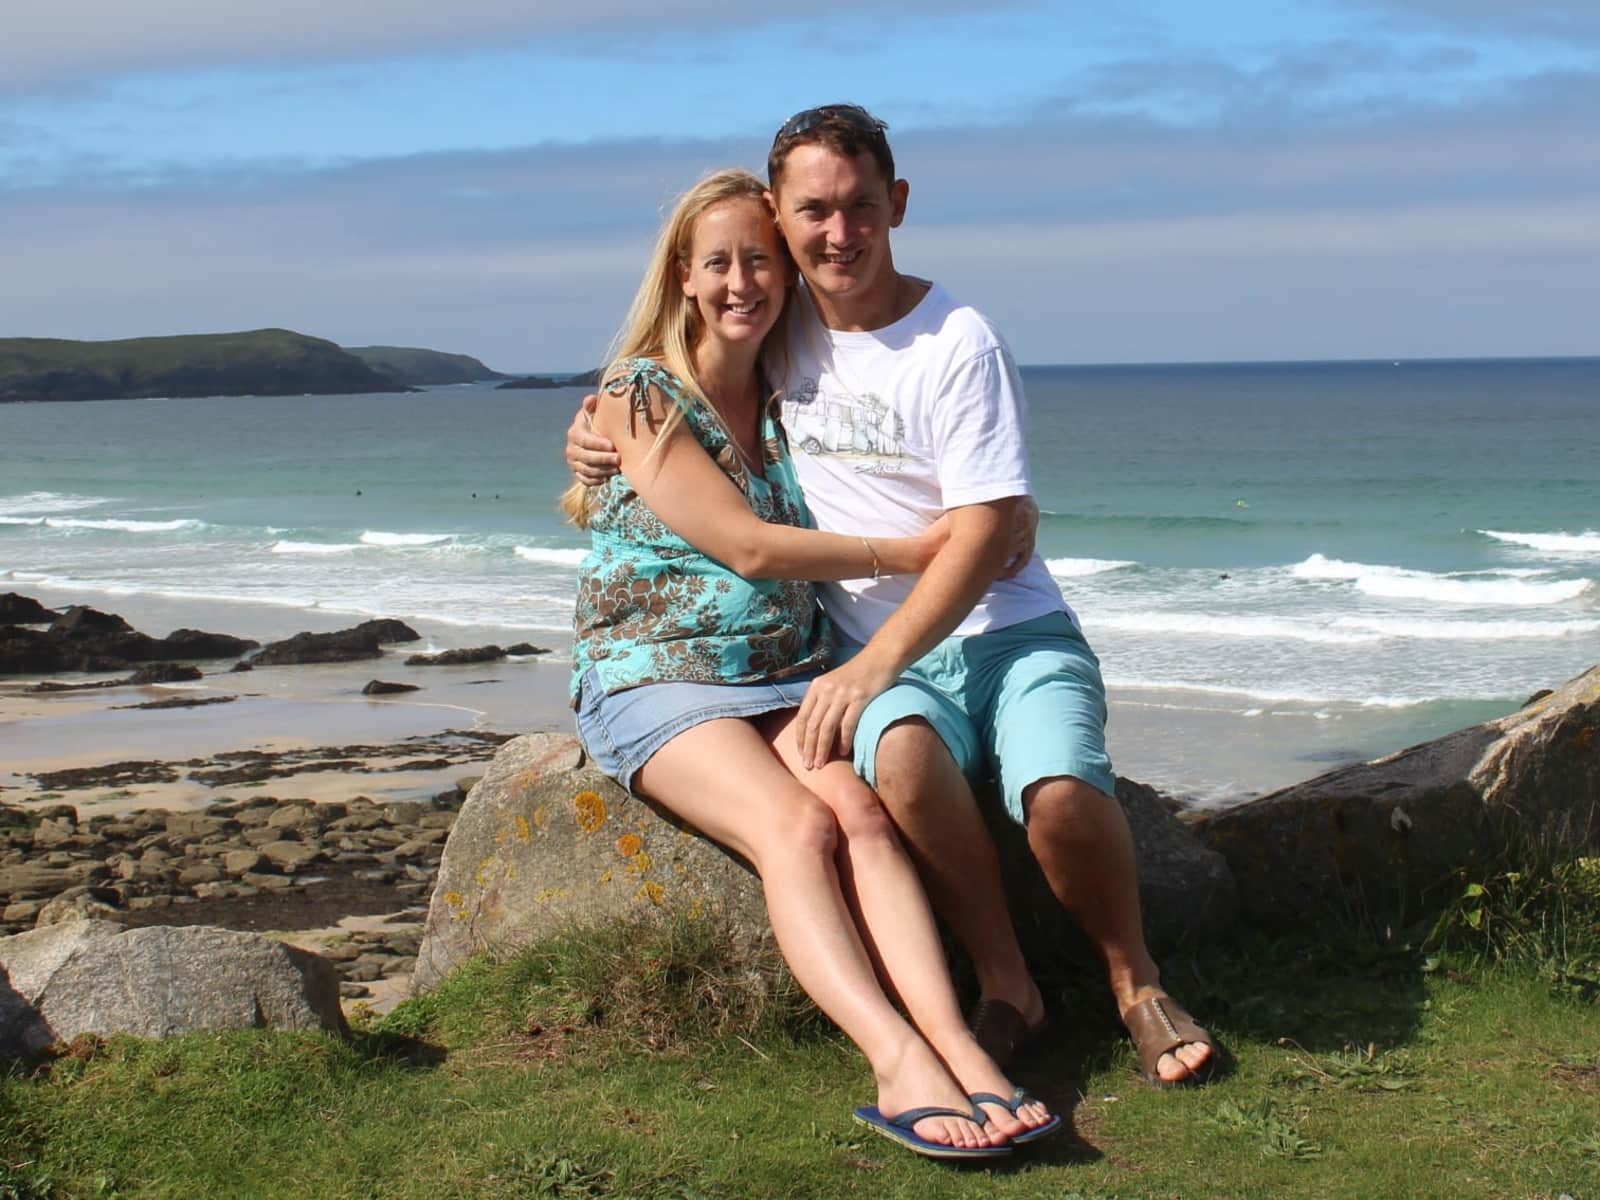 Sam & Alison from Cape Town, South Africa